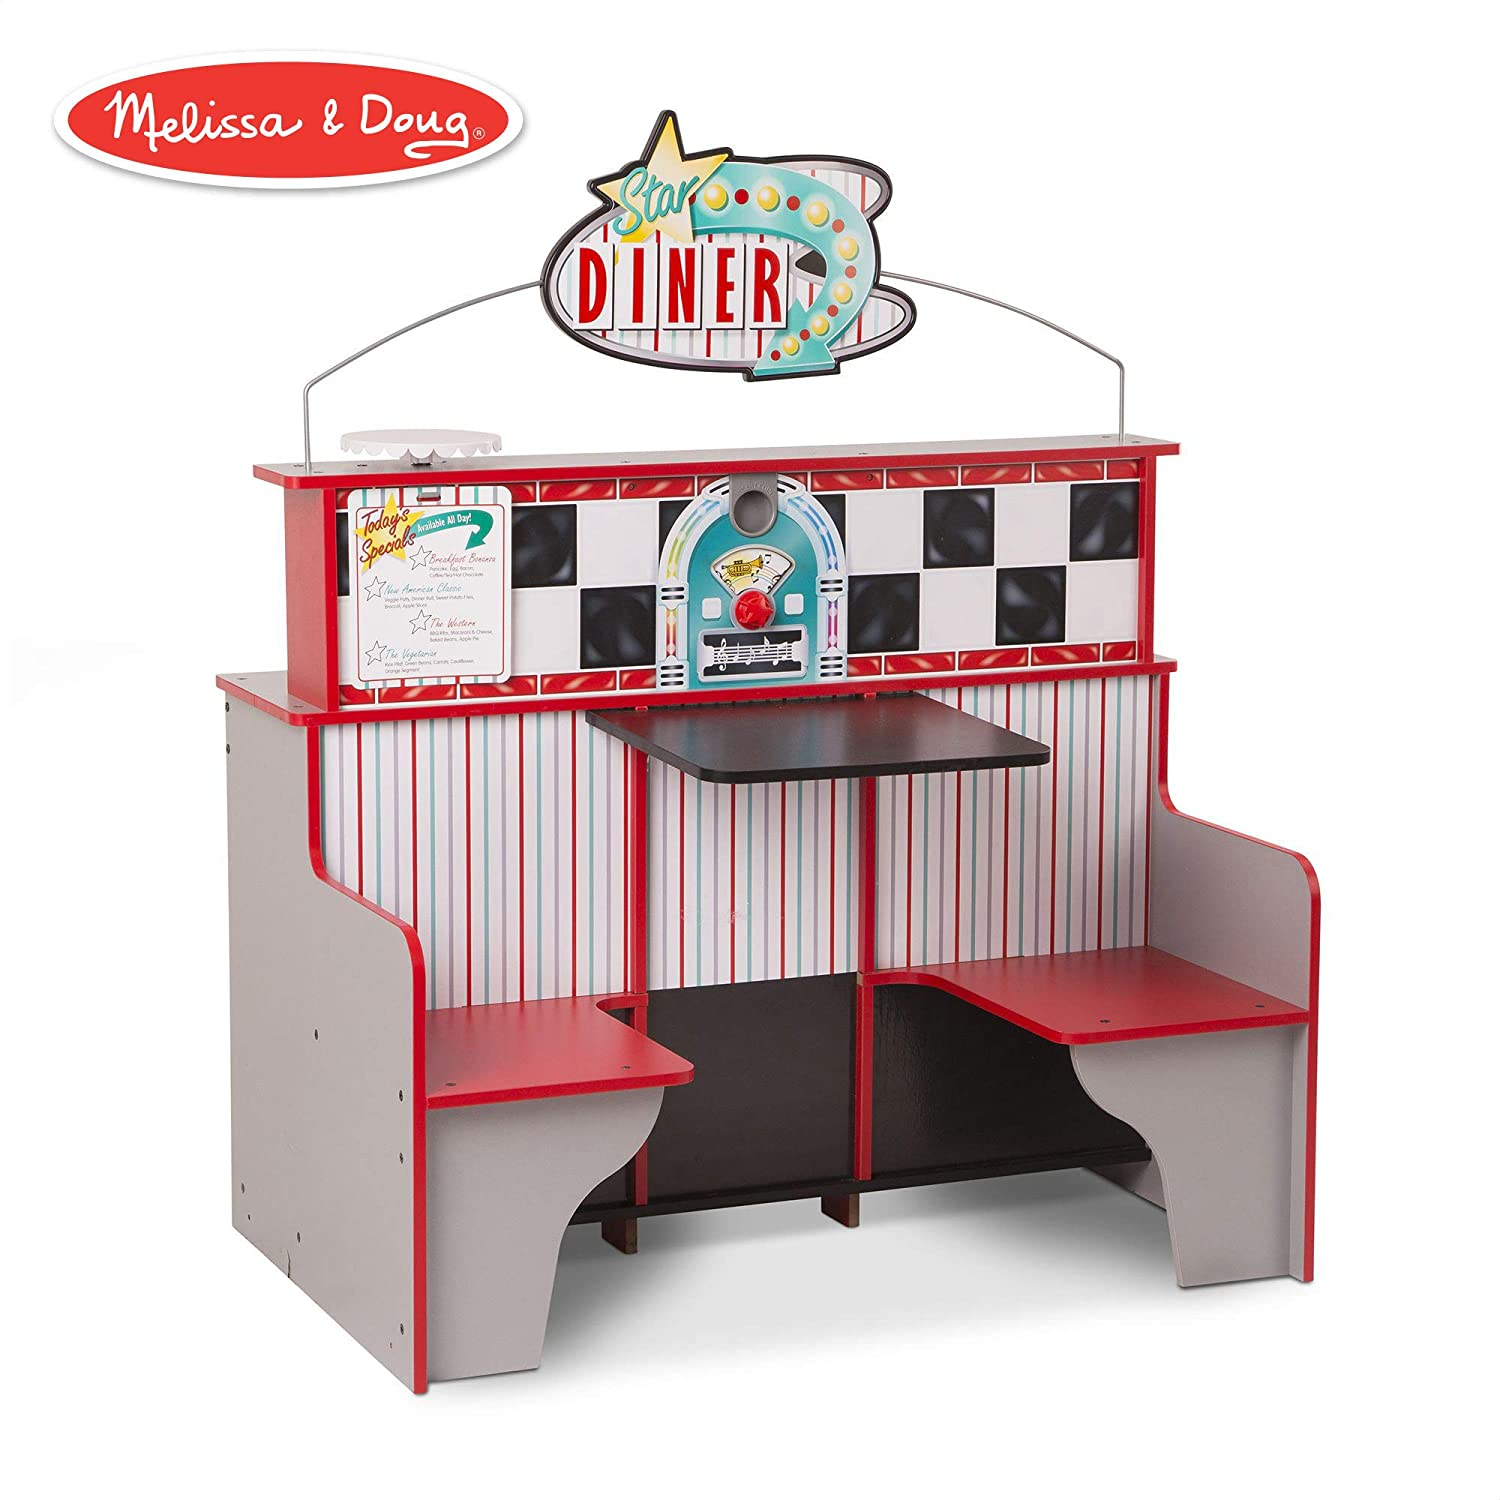 """Melissa & Doug Star Diner Restaurant (Play Set & Kitchen, Wooden Diner Play Set, Two Play Spaces in One, 35"""" H x 23"""" W x 43.5"""" L)"""